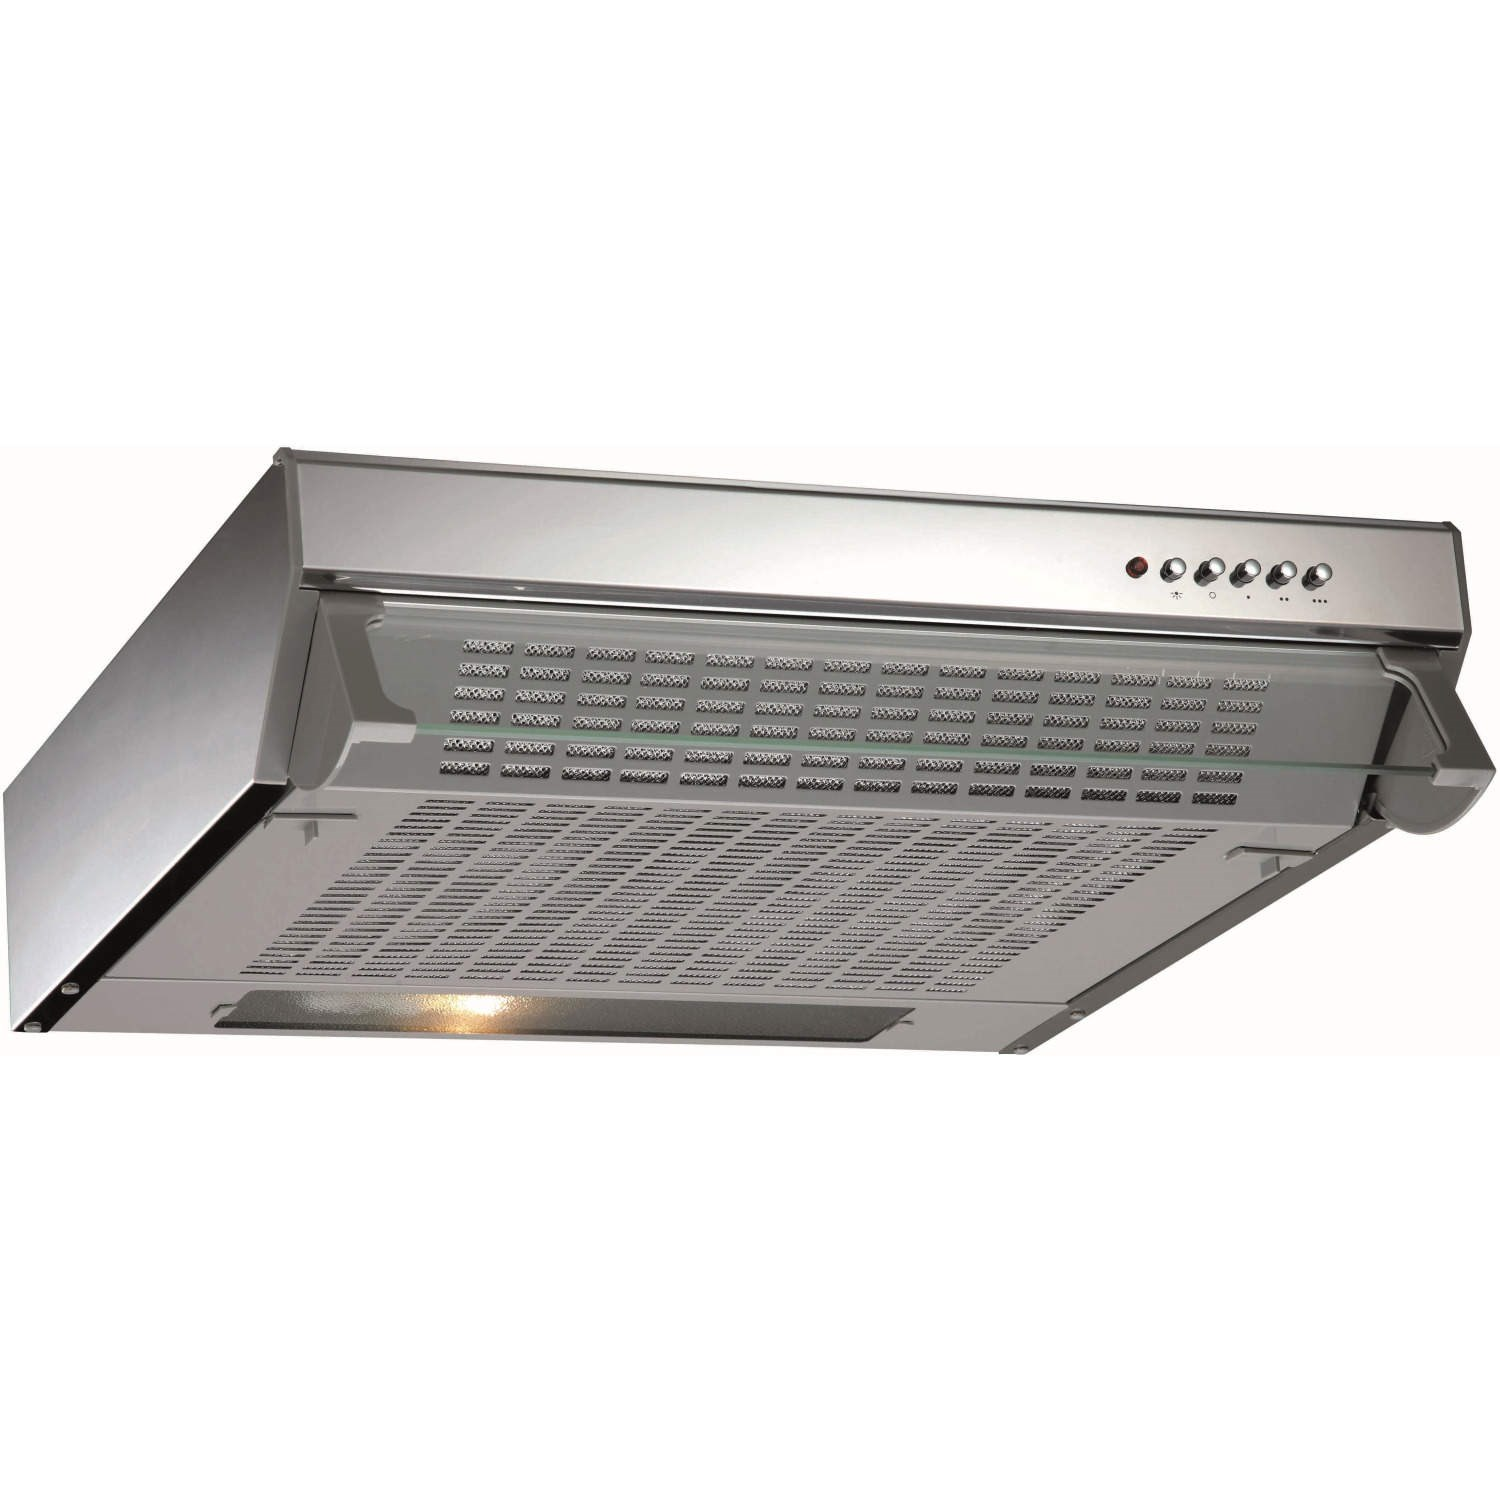 cda cst61ss 60cm conventional cooker hood stainless steel cst61ss 5055031603244 ebay. Black Bedroom Furniture Sets. Home Design Ideas